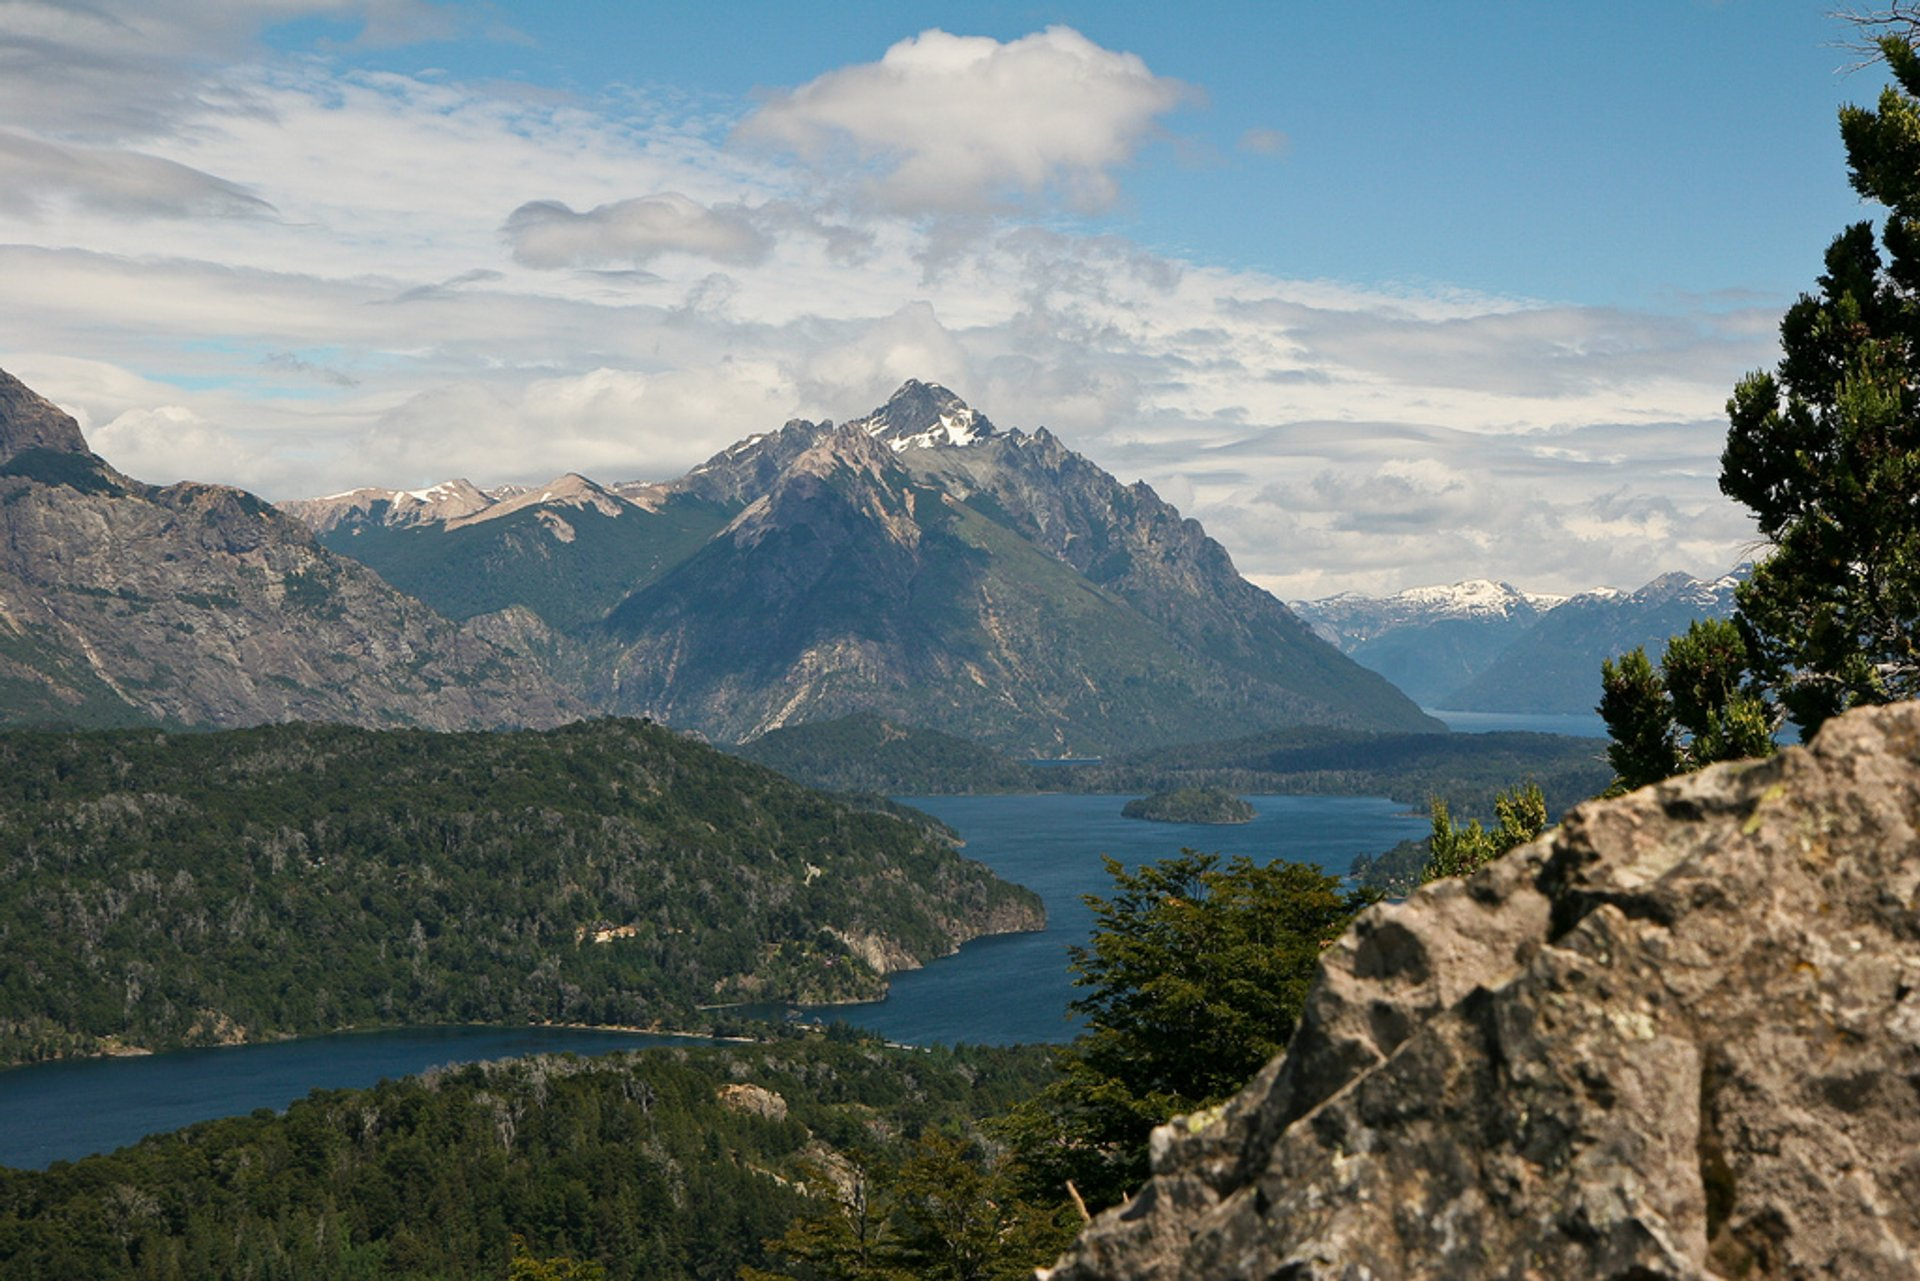 Best time for Trekking in Bariloche in Argentina 2020